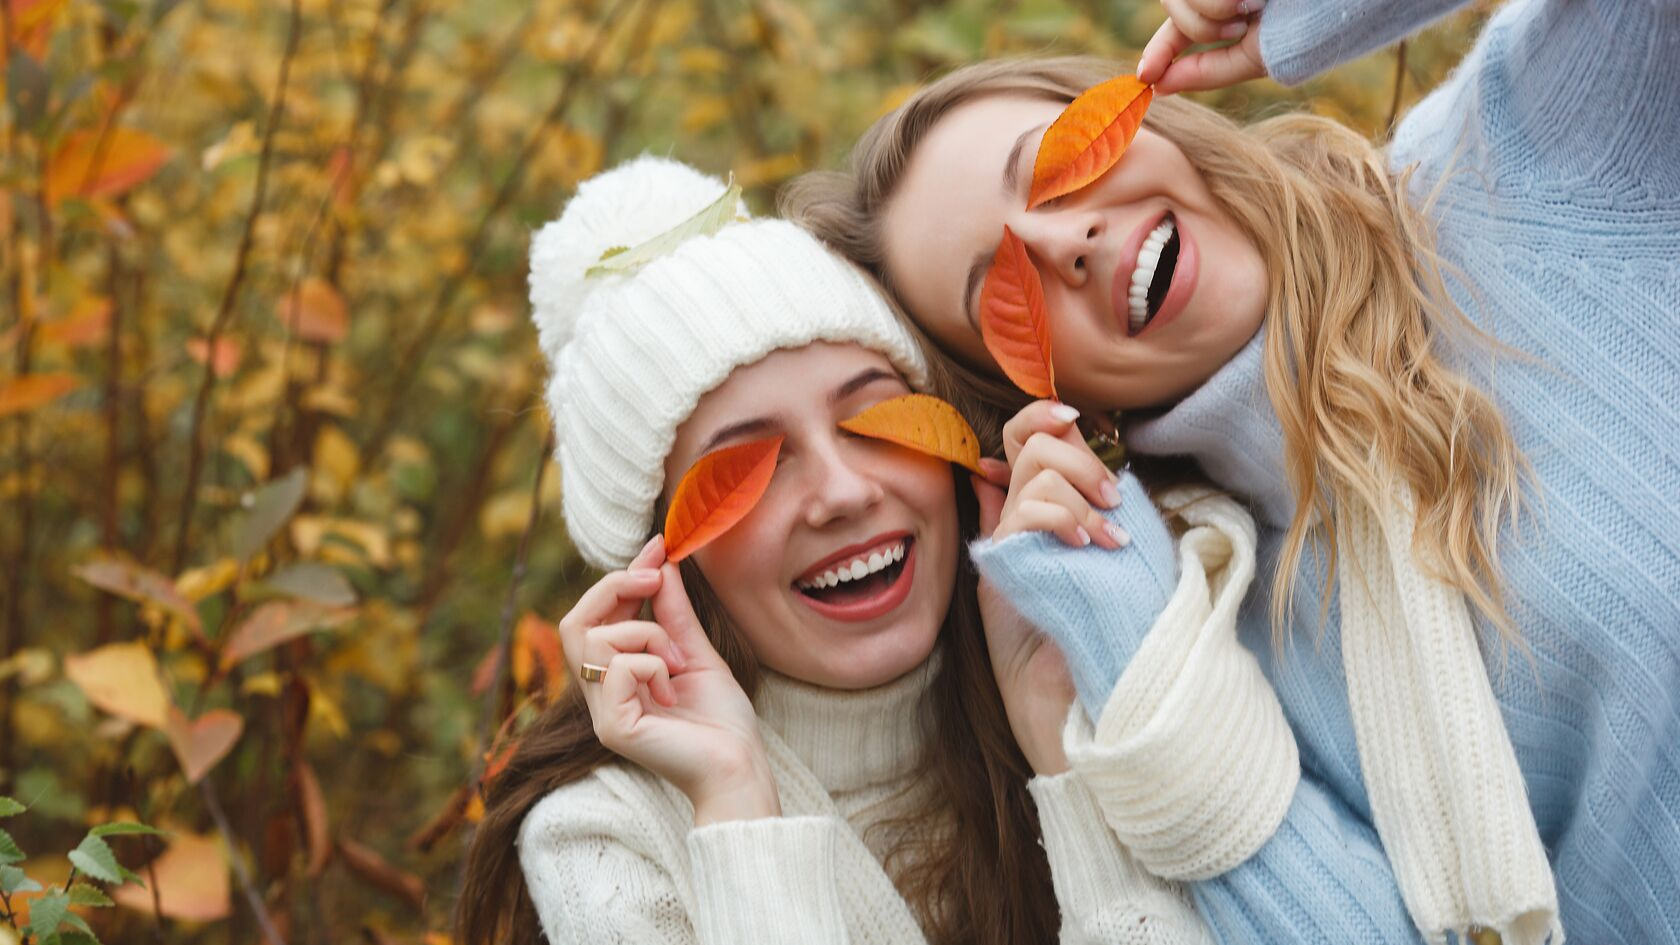 7 Essential Skin Care Tips for Fall by SOUK Skincare